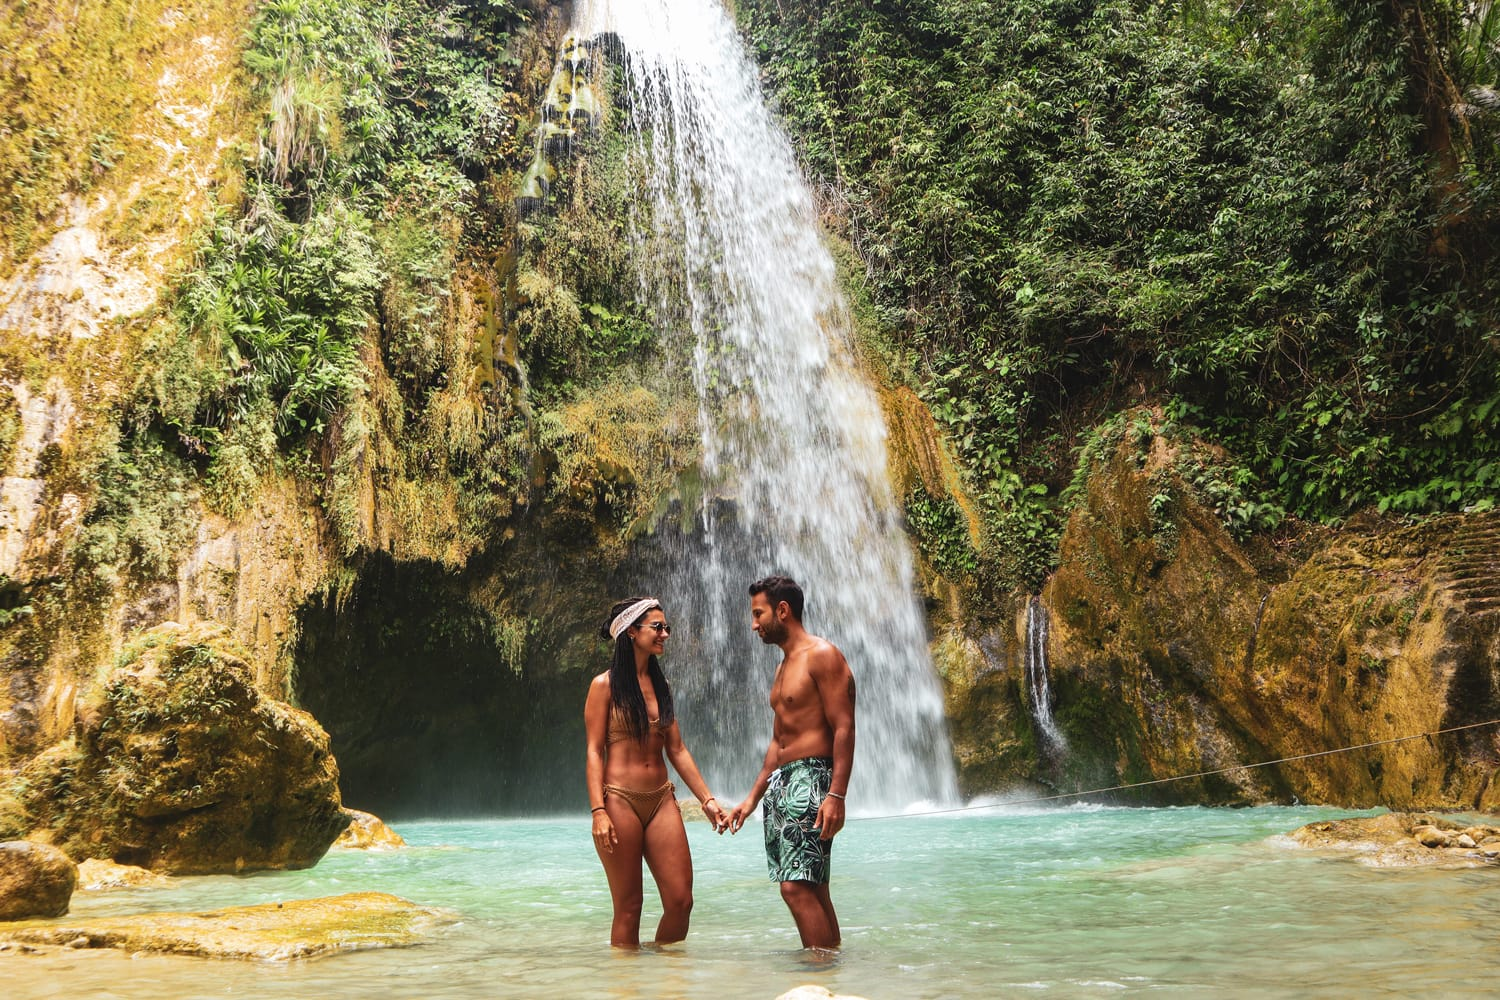 Lovely couple alone in deep forest waterfall from mountain gorge at hidden tropical jungle in Cebu Island in Philippines